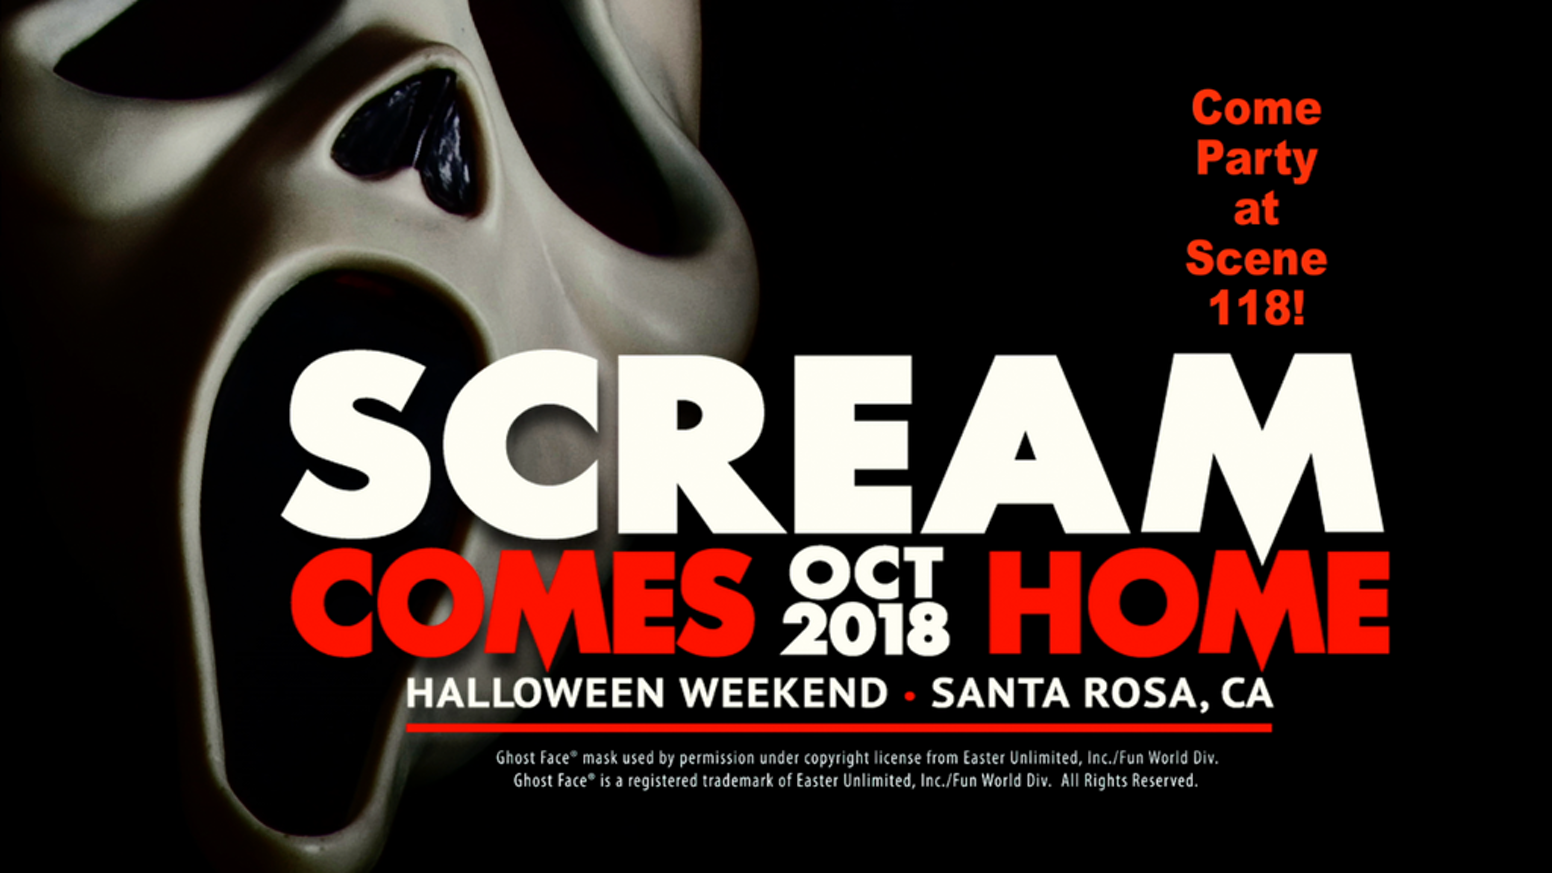 A once-in-a-lifetime SCREAM gathering and screening of the iconic horror movie at the actual house where its classic ending took place.